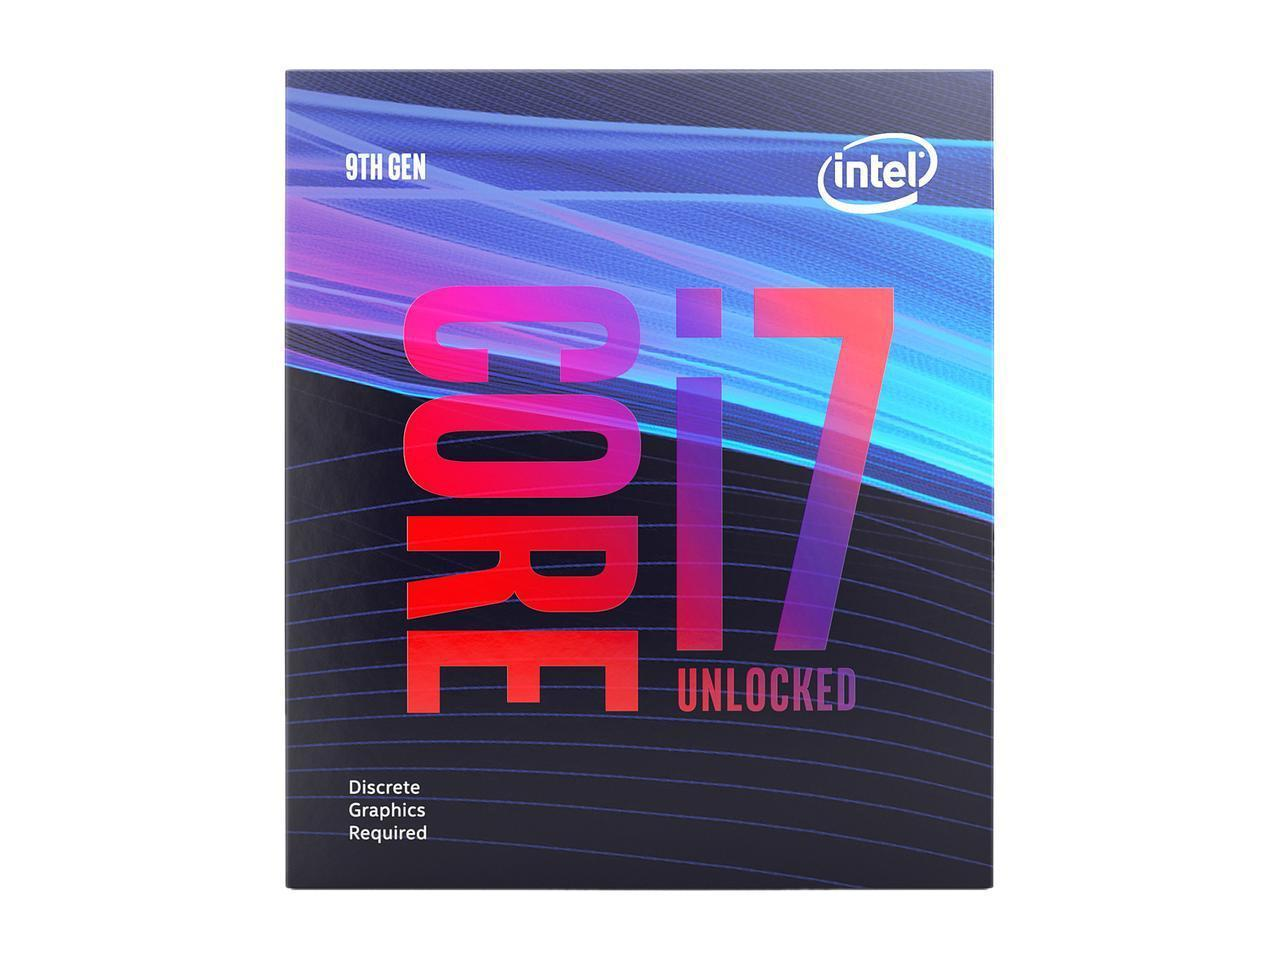 Процесор Intel Coffee Lake Core i7-9700KF 3.60GHz (up to 4.90GHz), 12MB, 95W,  LGA1151 (300 Series)